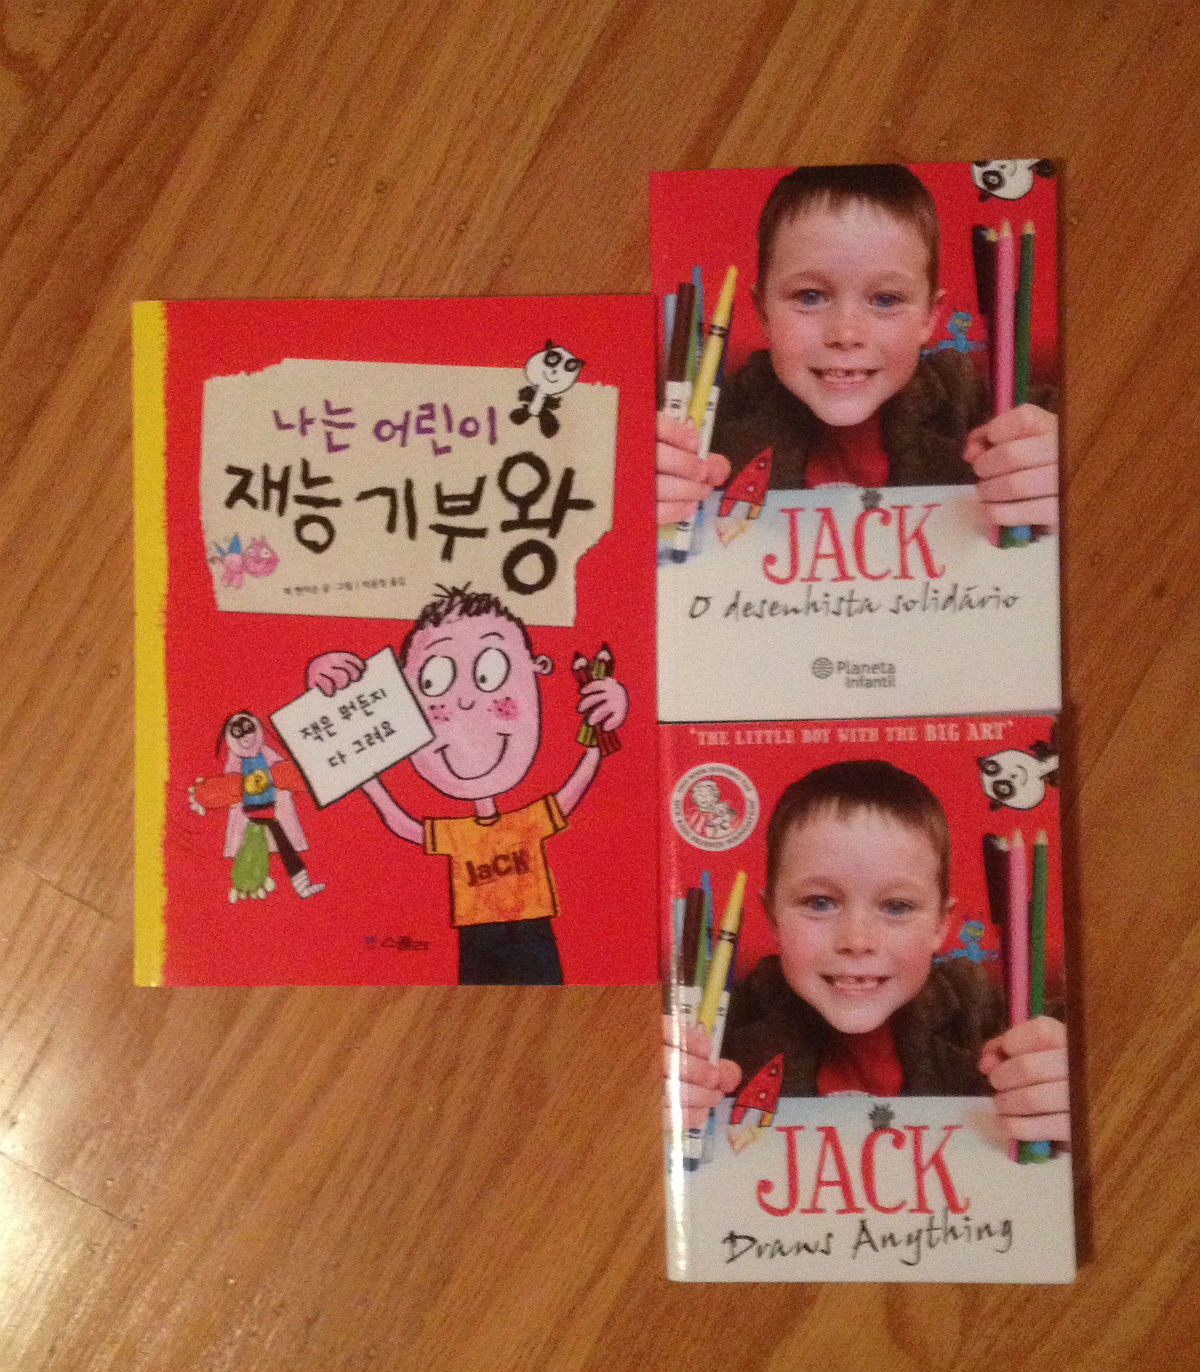 Three different version of Jack's book — Jack Draws Anything